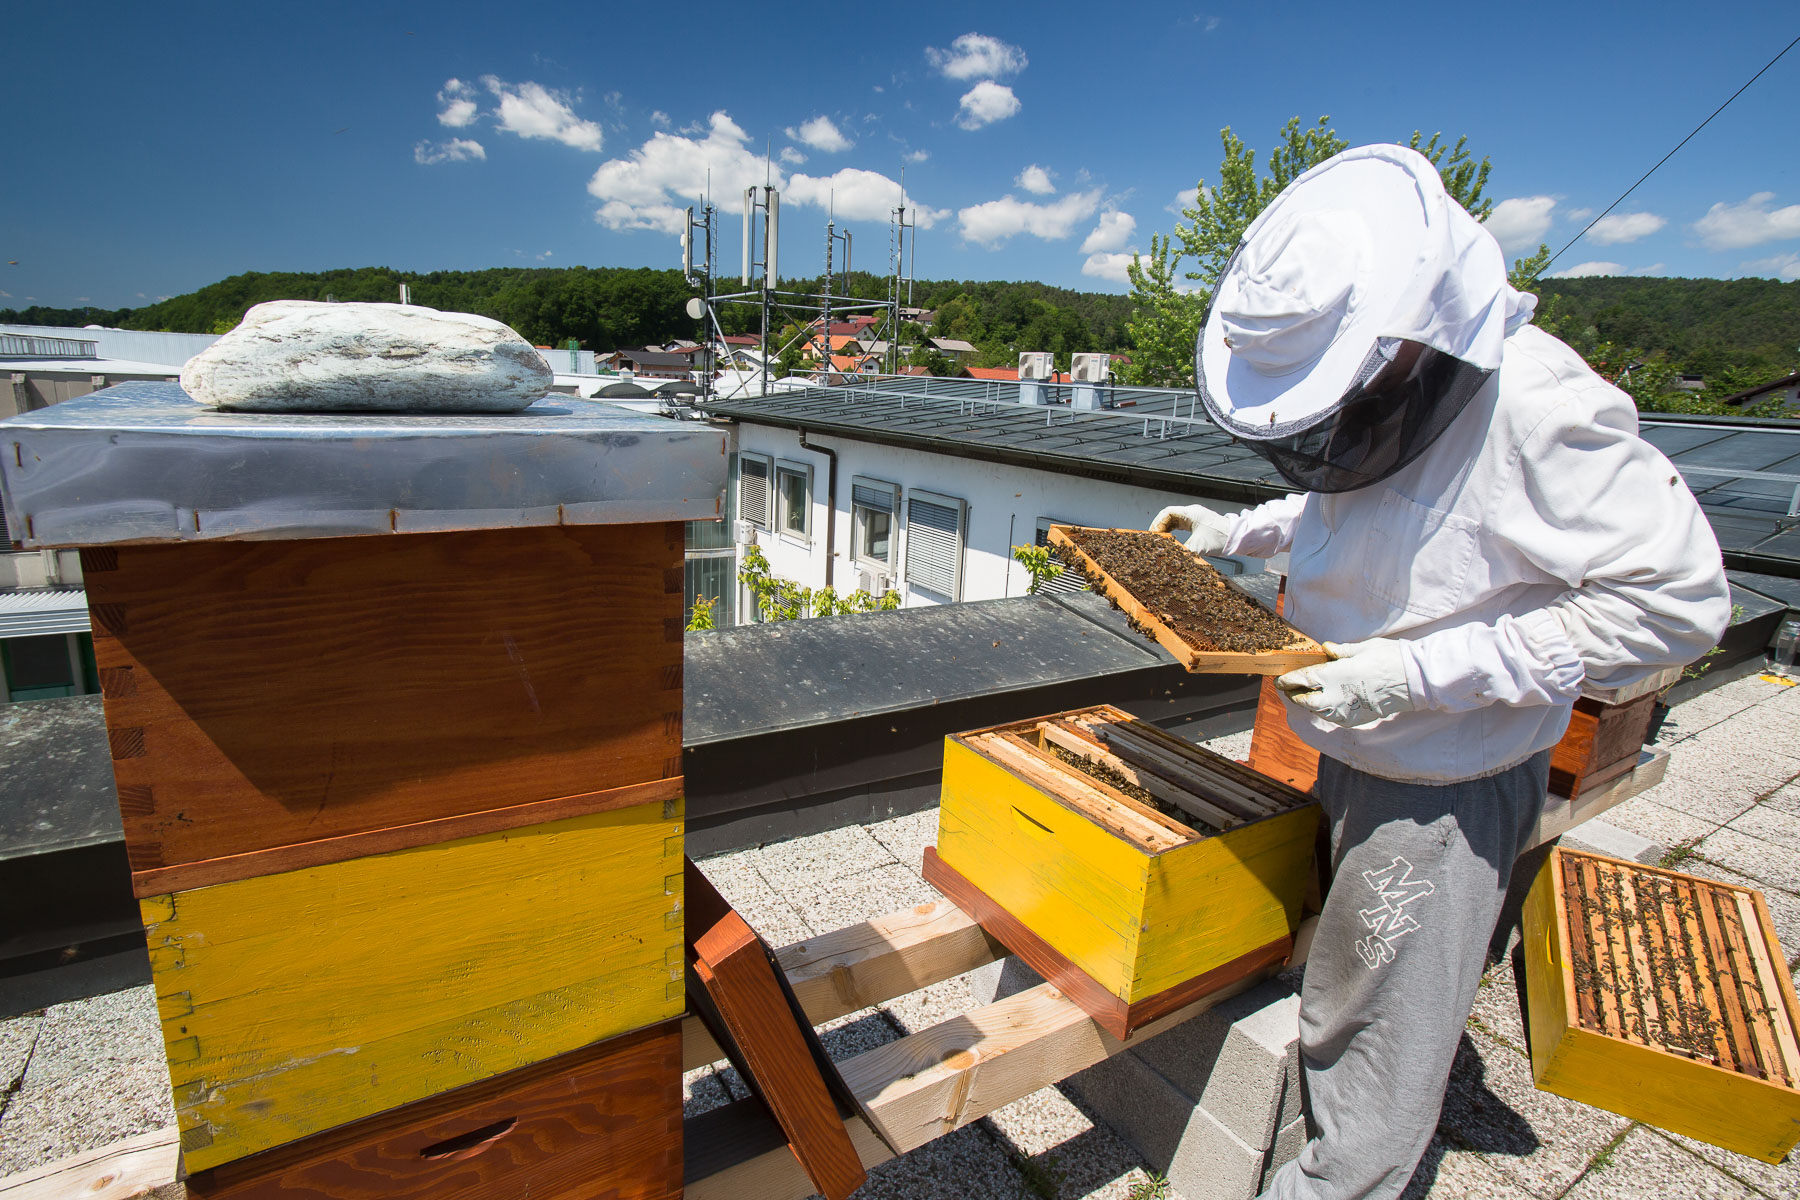 Trušnovec inspects the beehives on the roof of Semenarna Ljubljana, a leading seed-providing company in Slovenia. It is located just across from a large shopping area with numerous shopping malls and big stores etc.